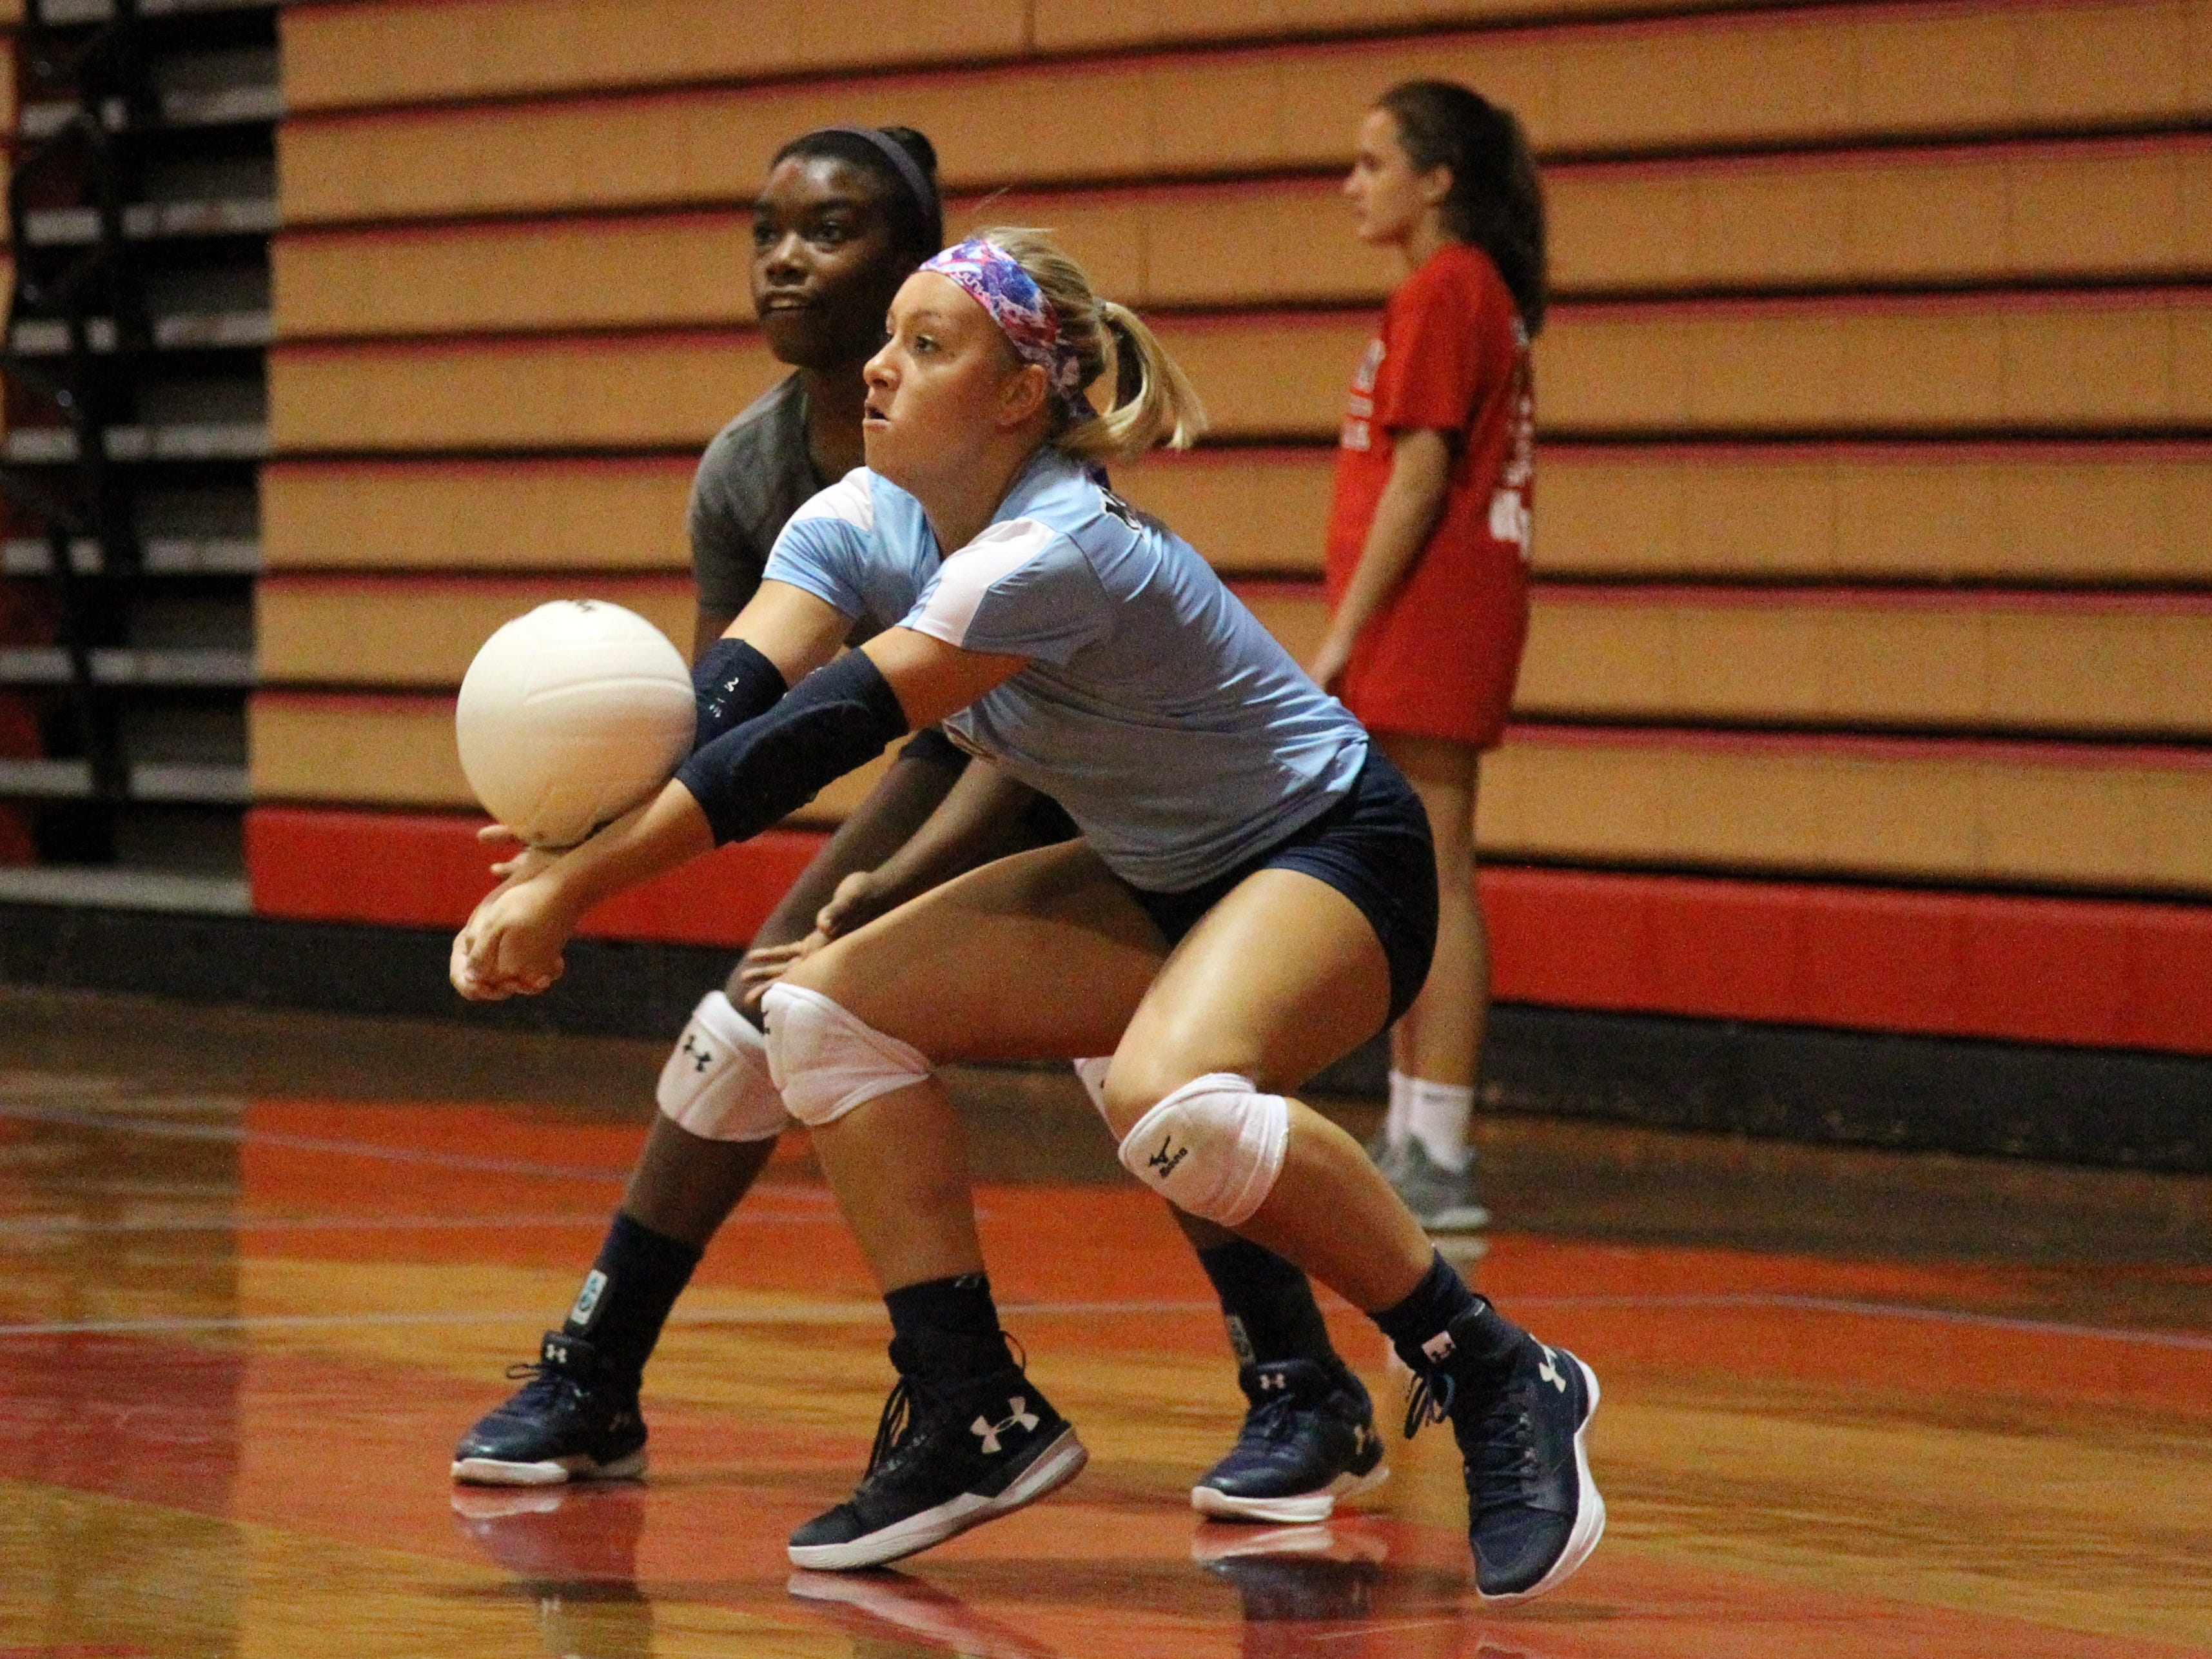 Maclay's Addyson Lewis digs a serve during Saturday's preseason volleyball classic at Leon.